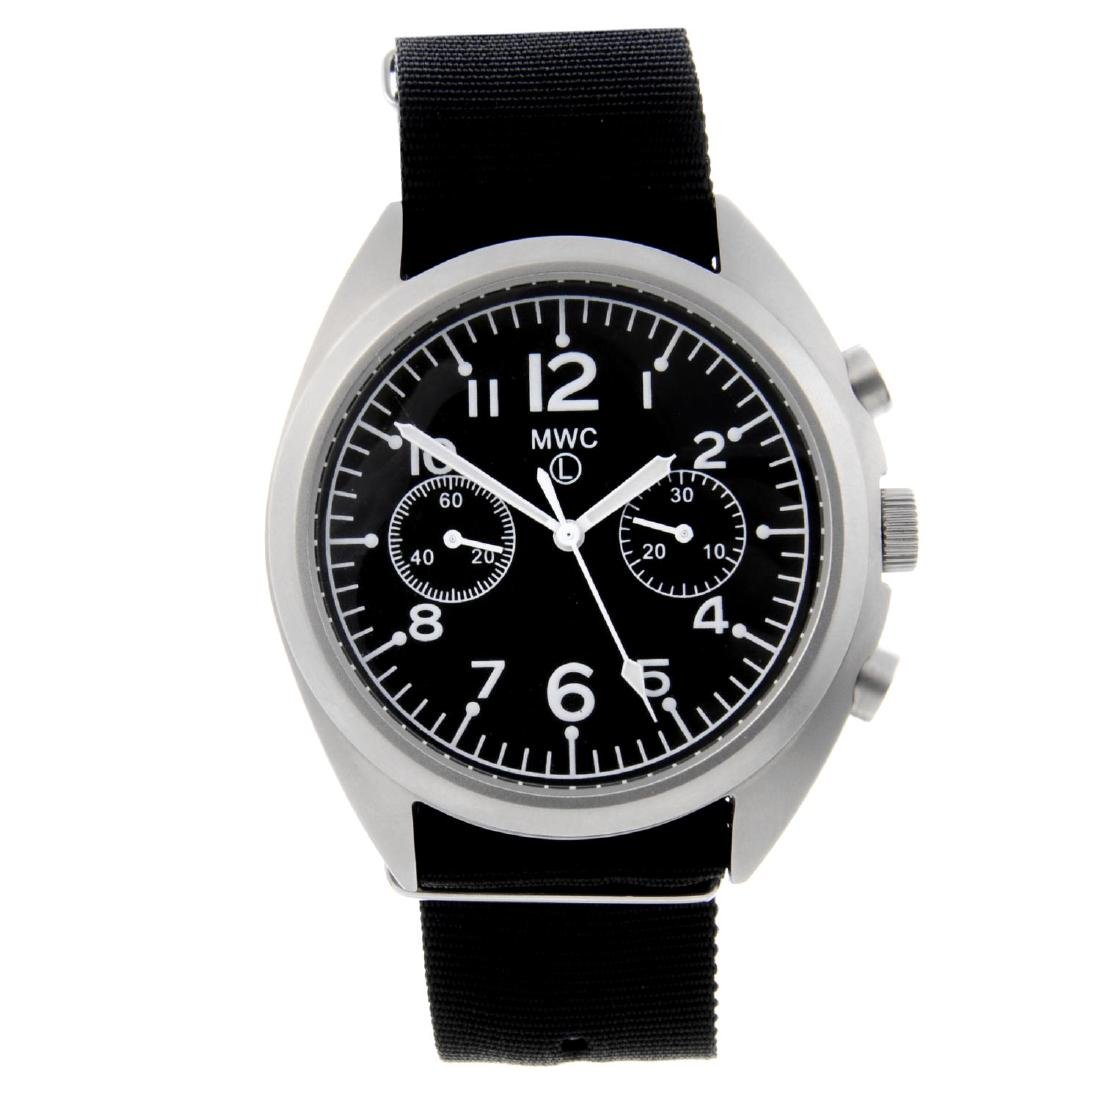 MWC - a gentleman's chronograph wrist watch. Stainless